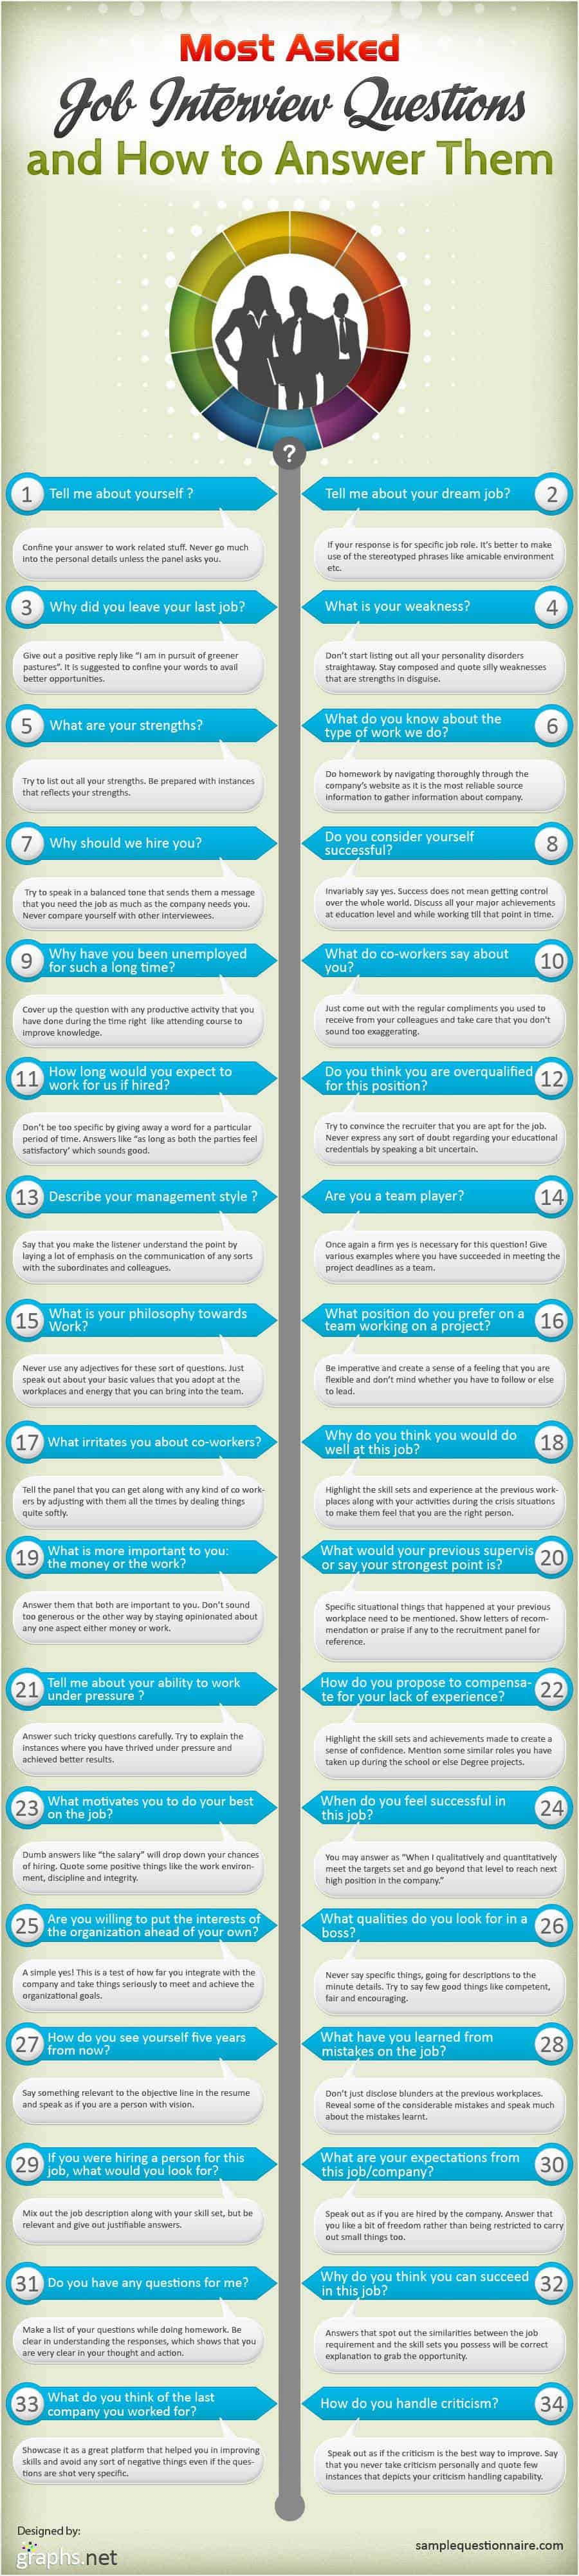 Most Asked Interview Questions Infographic